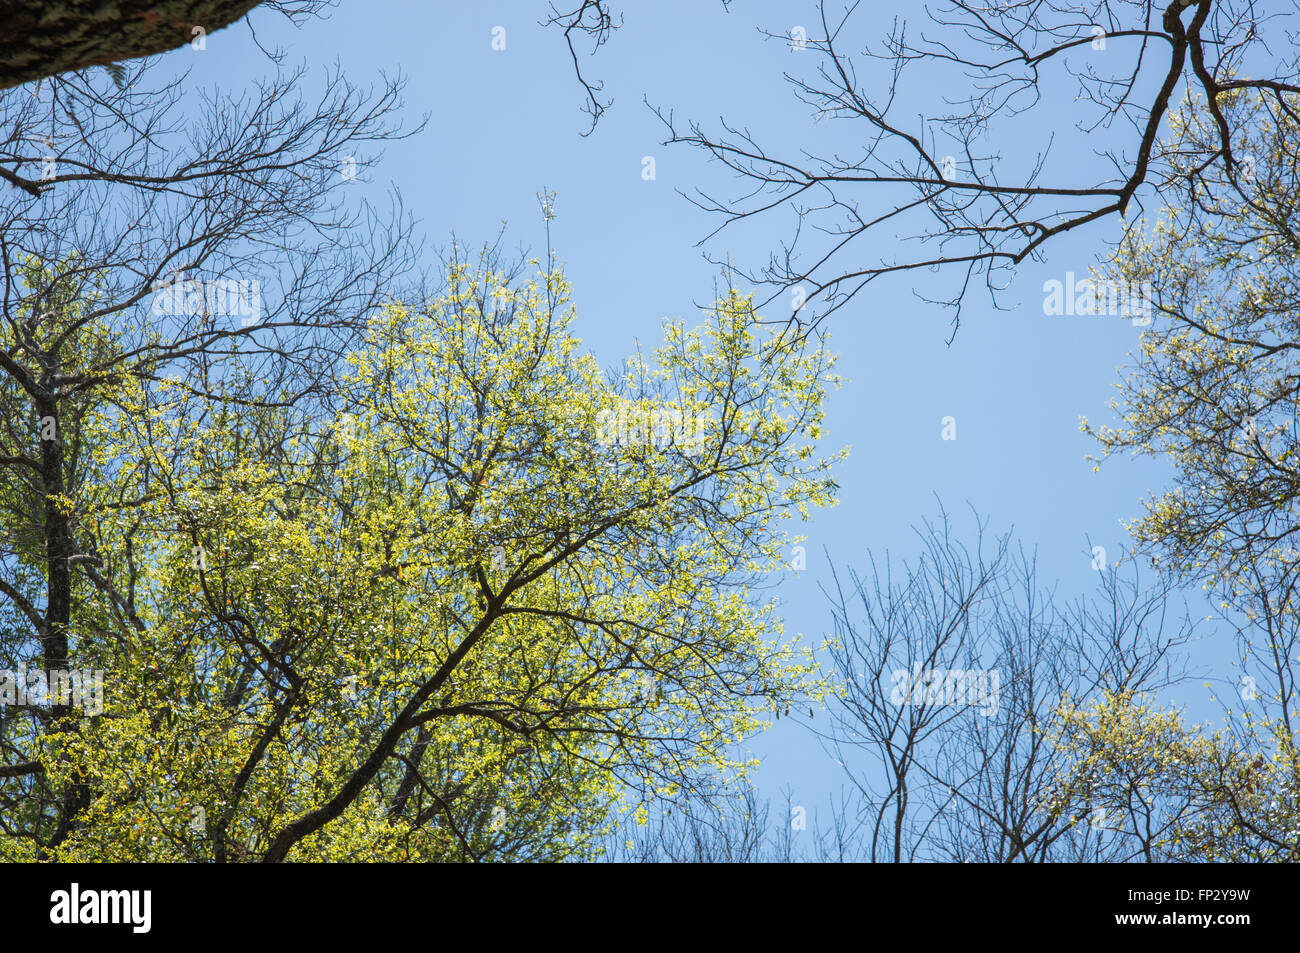 Leafing Oak trees with Hickory skeletons, early spring - Stock Image